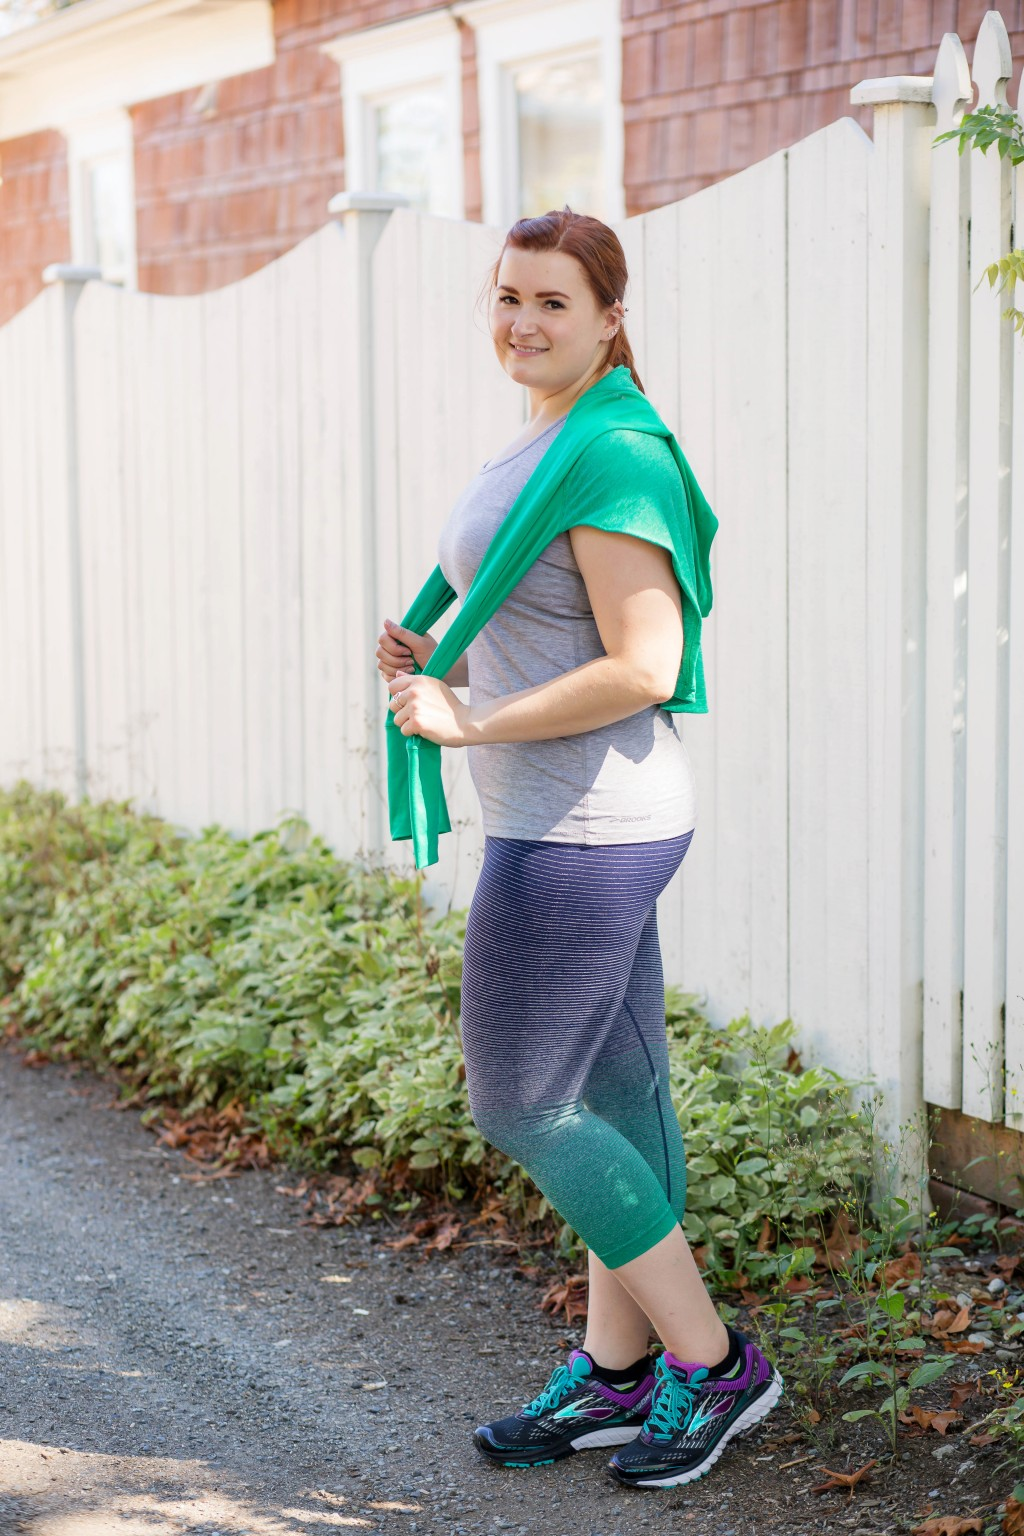 6-blue-green-and-gray-workout-outfit